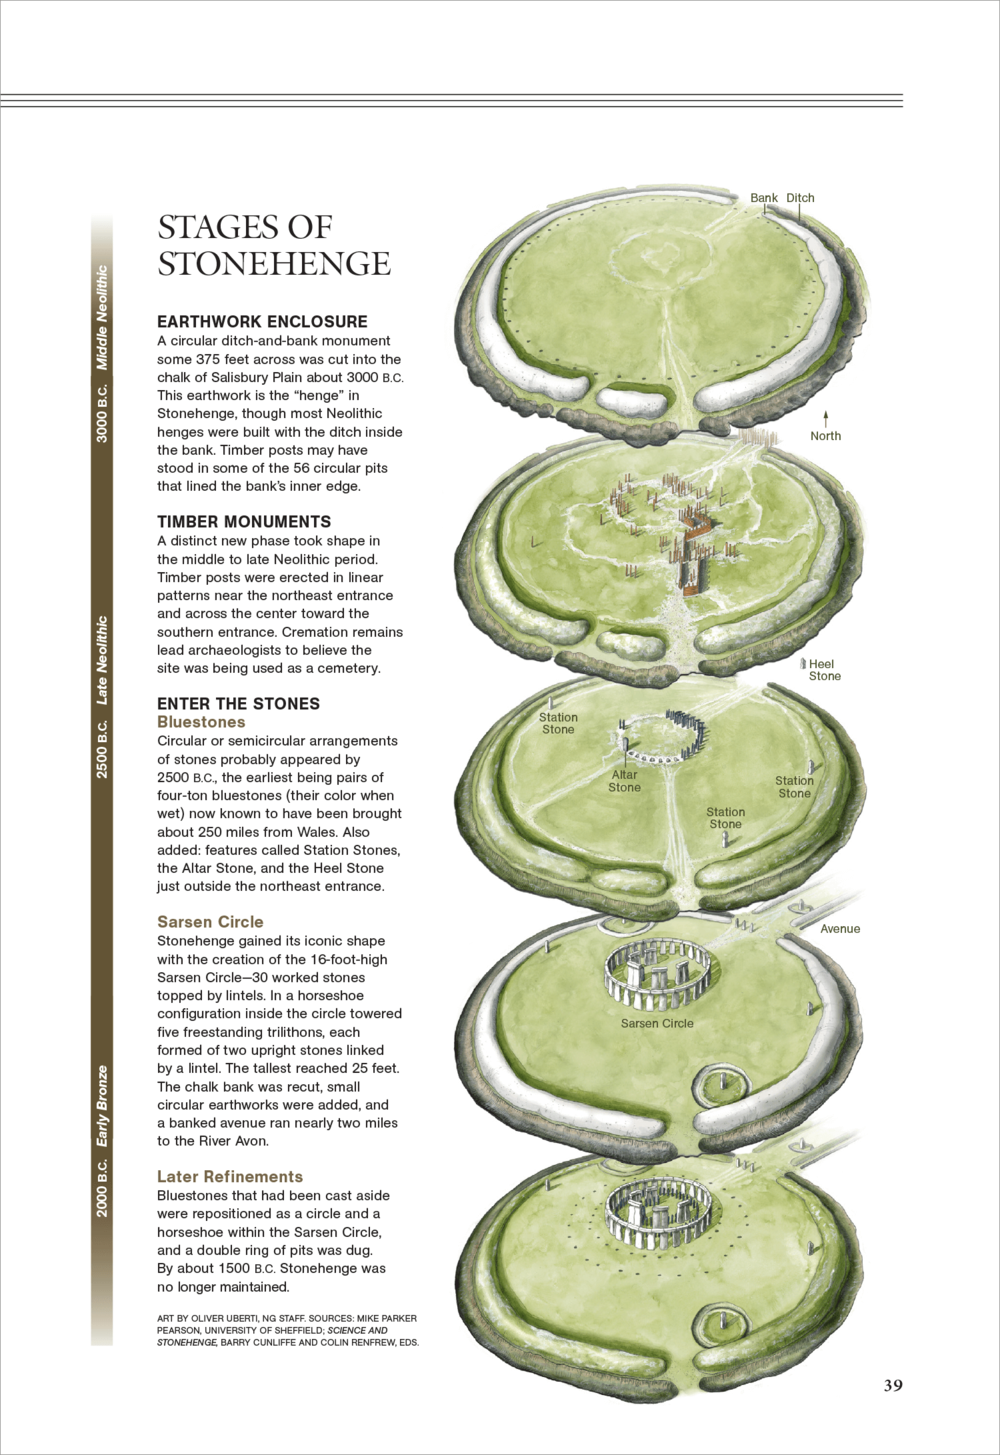 Stages of Stonehenge   National Geographic  June 2008  To license, email:  NatGeoCreative@natgeo.com